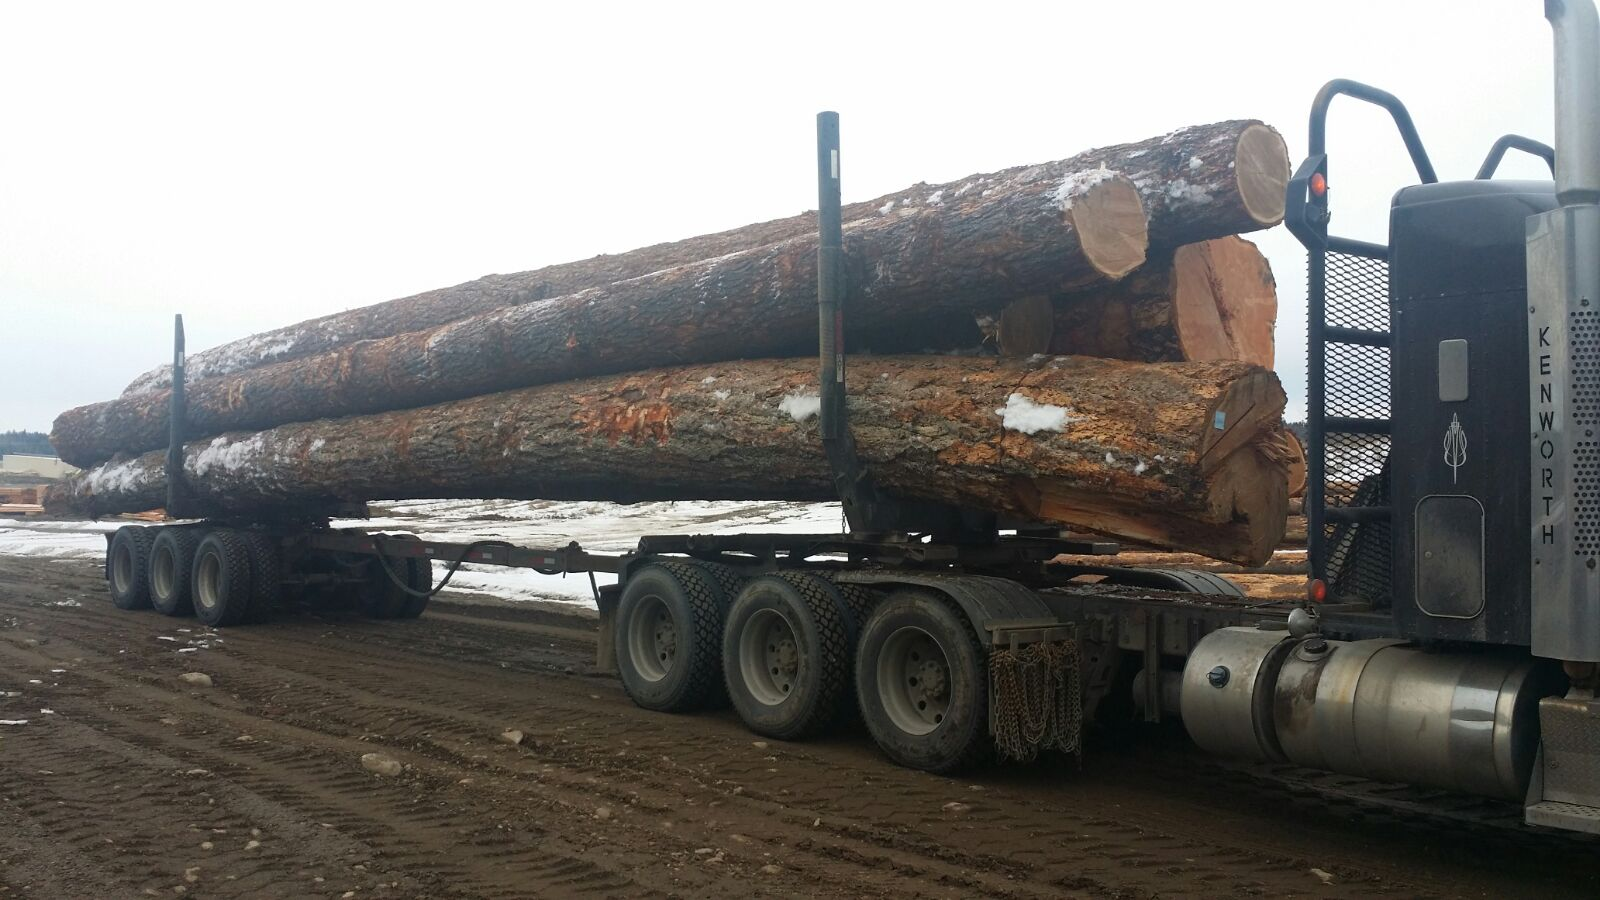 semi carrying logs